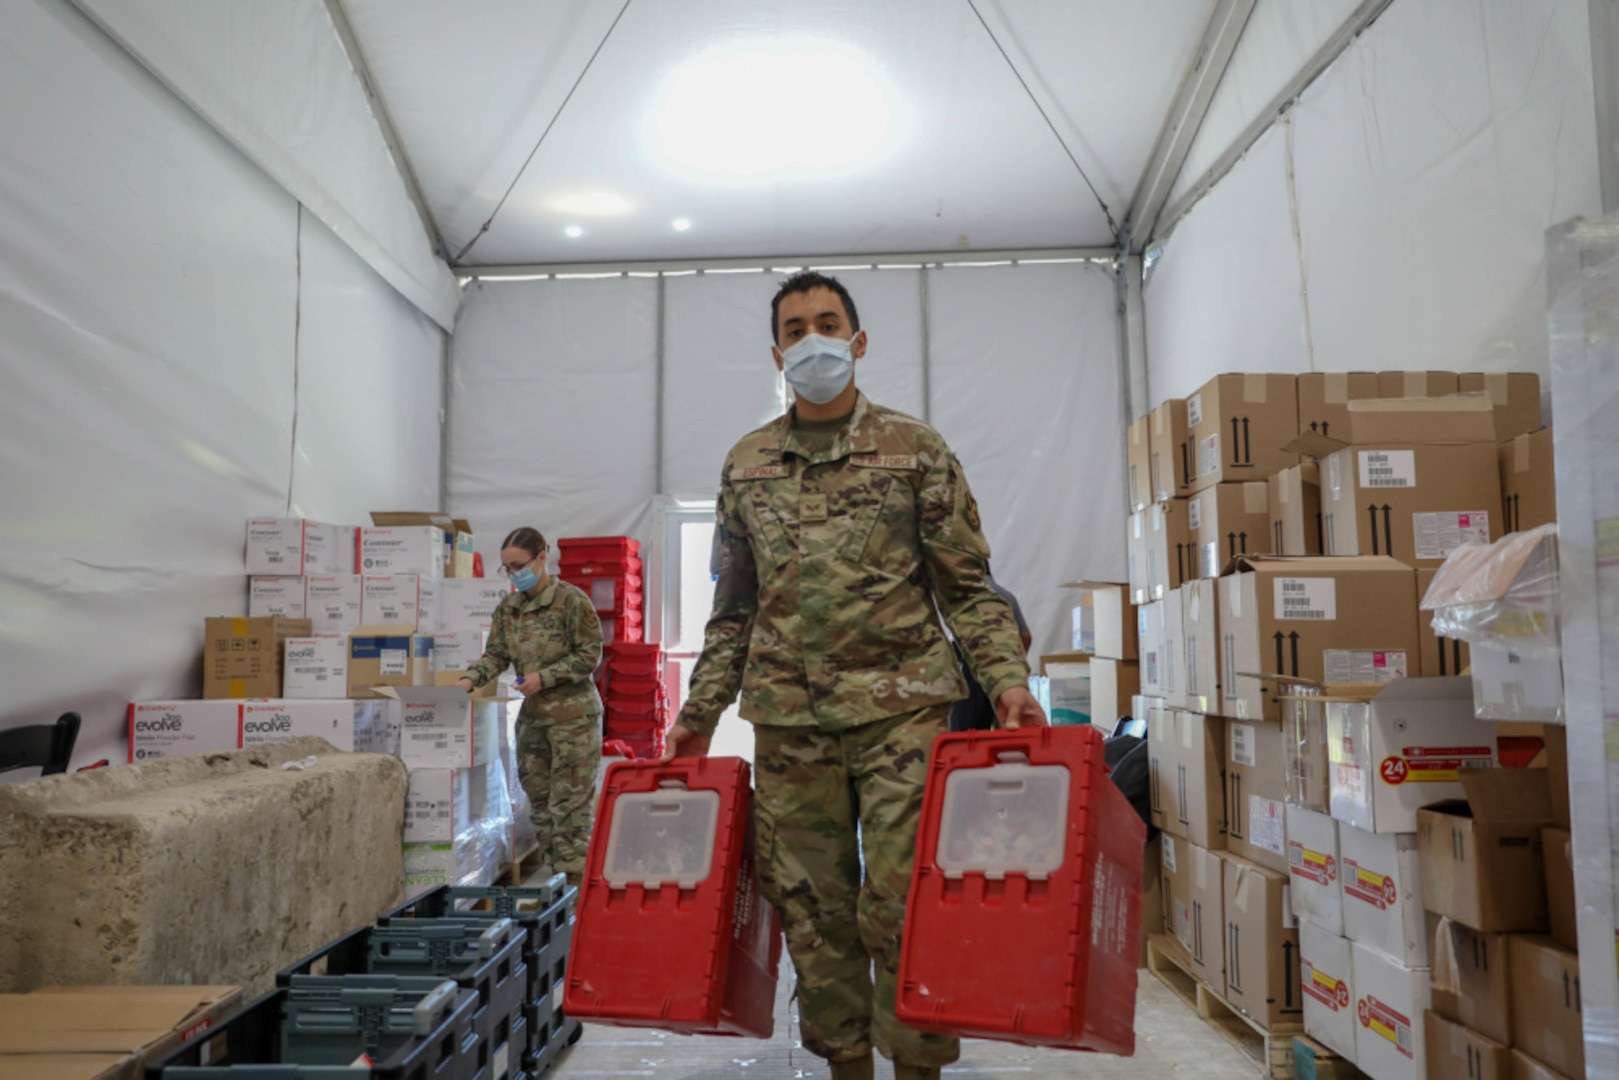 """Air Force Senior Airman David Espinal, right, a Bloomfield, New Jersey native and a logistical planner assigned to the 335th Air Expeditionary Group, exchanges the hazmat containers while U.S. Air Force Senior Airman Whitney Fenninger-Stutzman, left, inventories the medical supplies at the federally-run pilot Community Vaccination Center at the Greenbelt Metro Station in Greenbelt, Maryland, May 13, 2021. Deliveries of medical supplies such as these are made possible by the Defense Logistics Agency Troop Support Medical's Medical Surgical Prime Vendor program, named """"Best in Class"""" by the Office of Management and Budget in July 2021."""